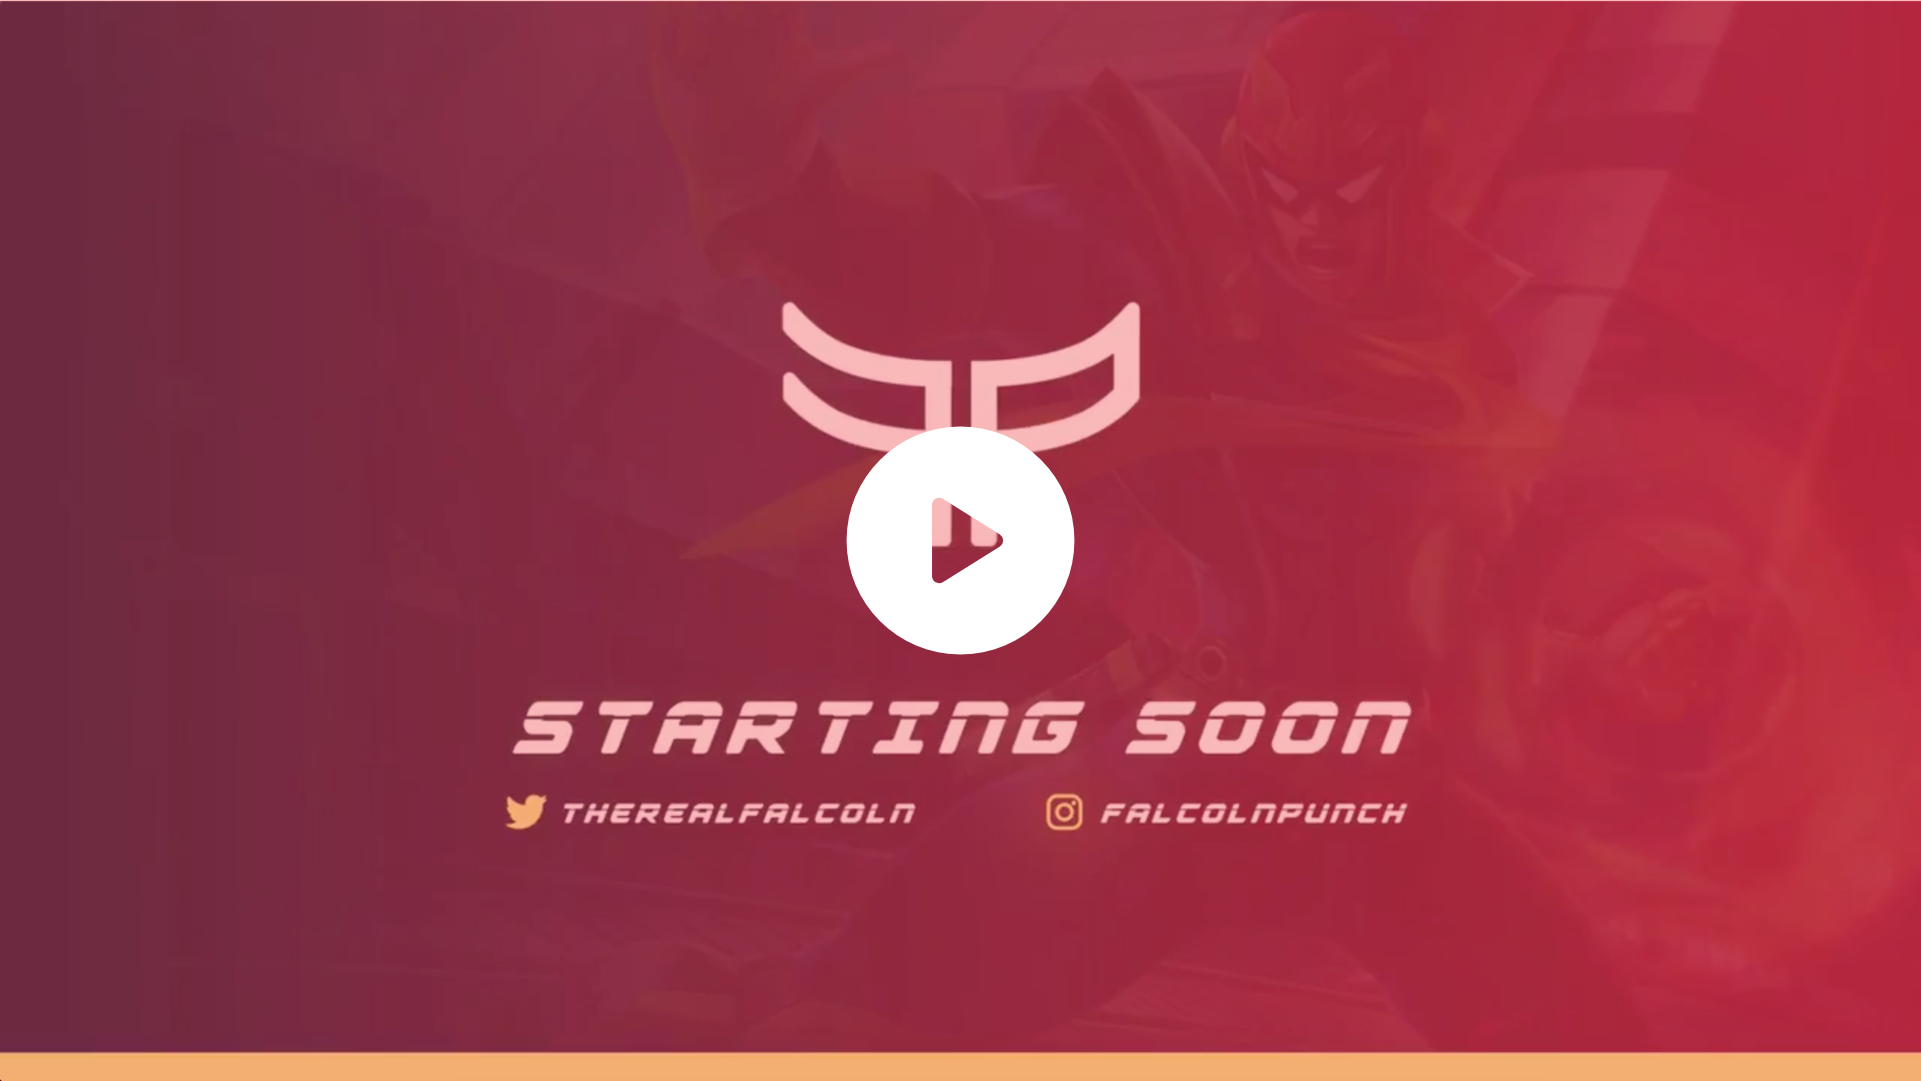 Animated Screen using a FalconPunch design and simple FP logo